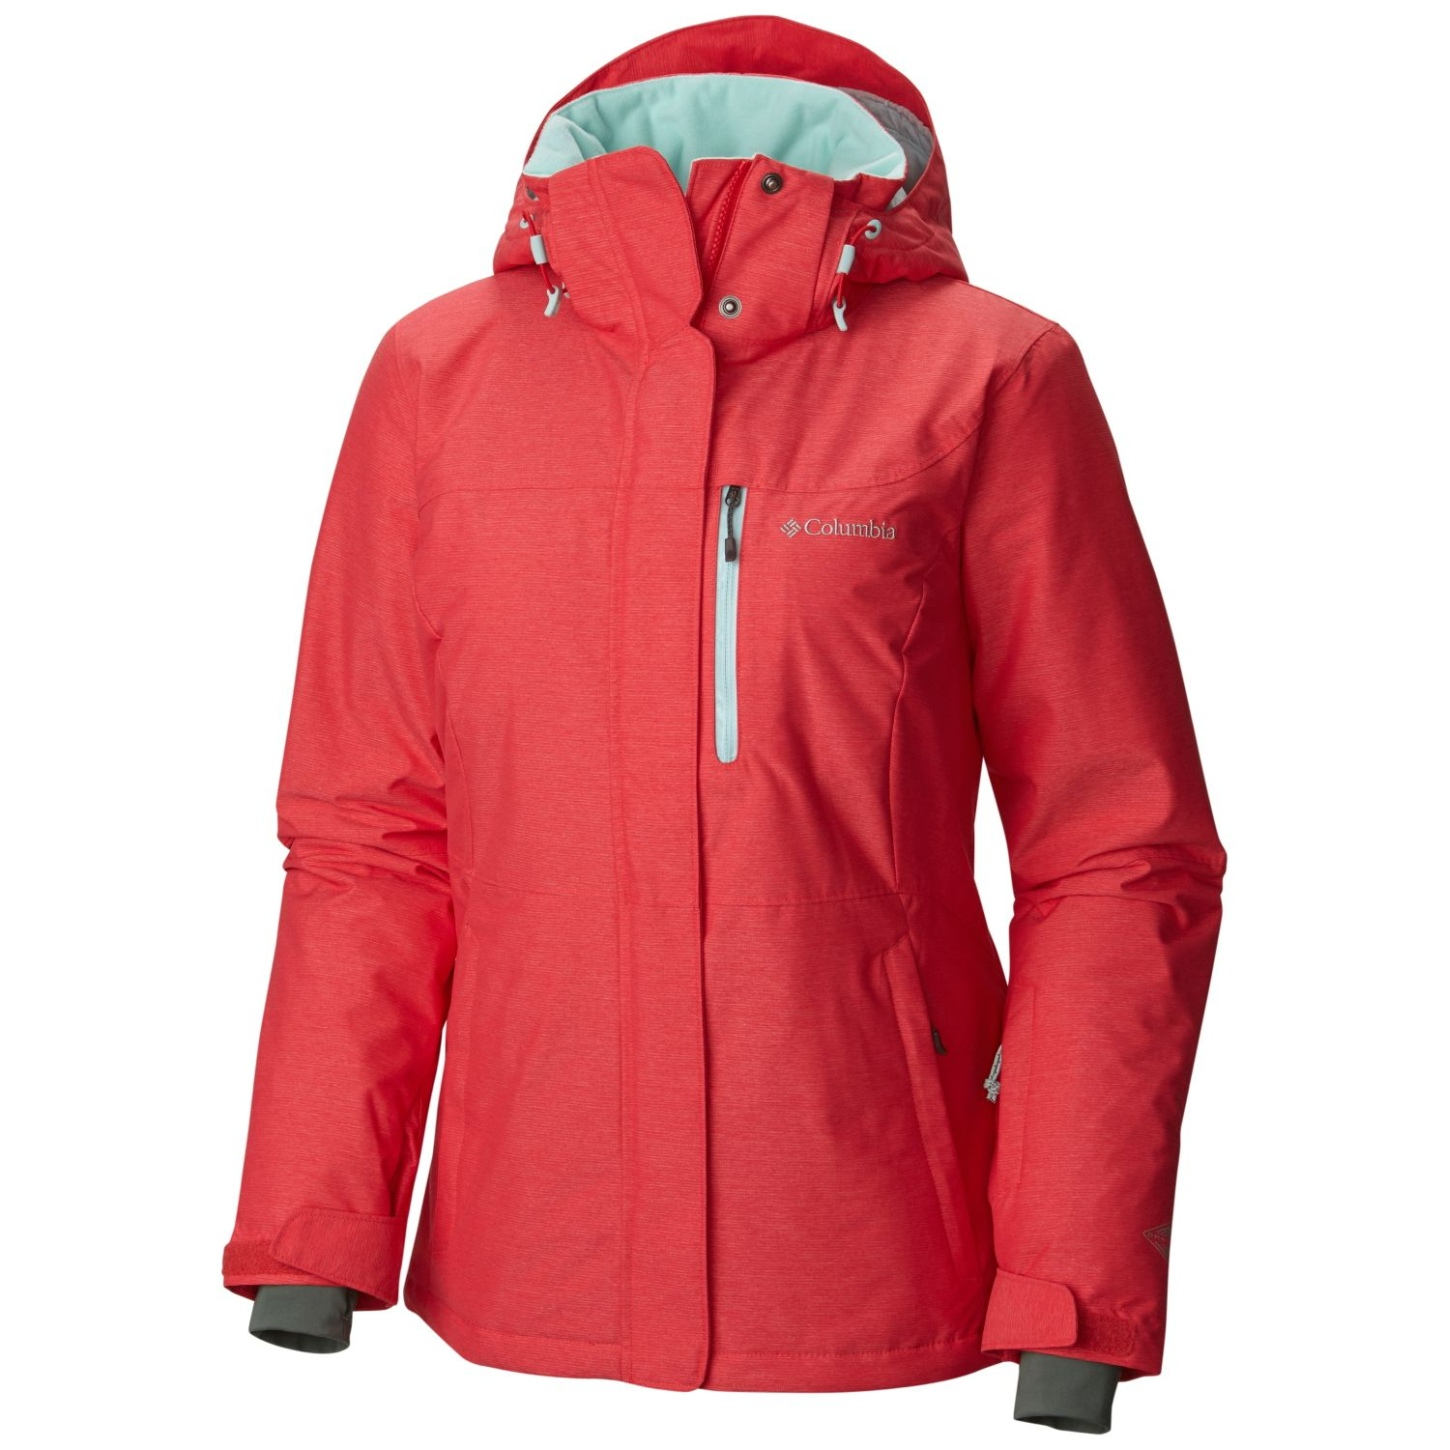 Columbia Women's Alpine Action Omni-Heat Ski Jacket Red Camellia, Spray-30